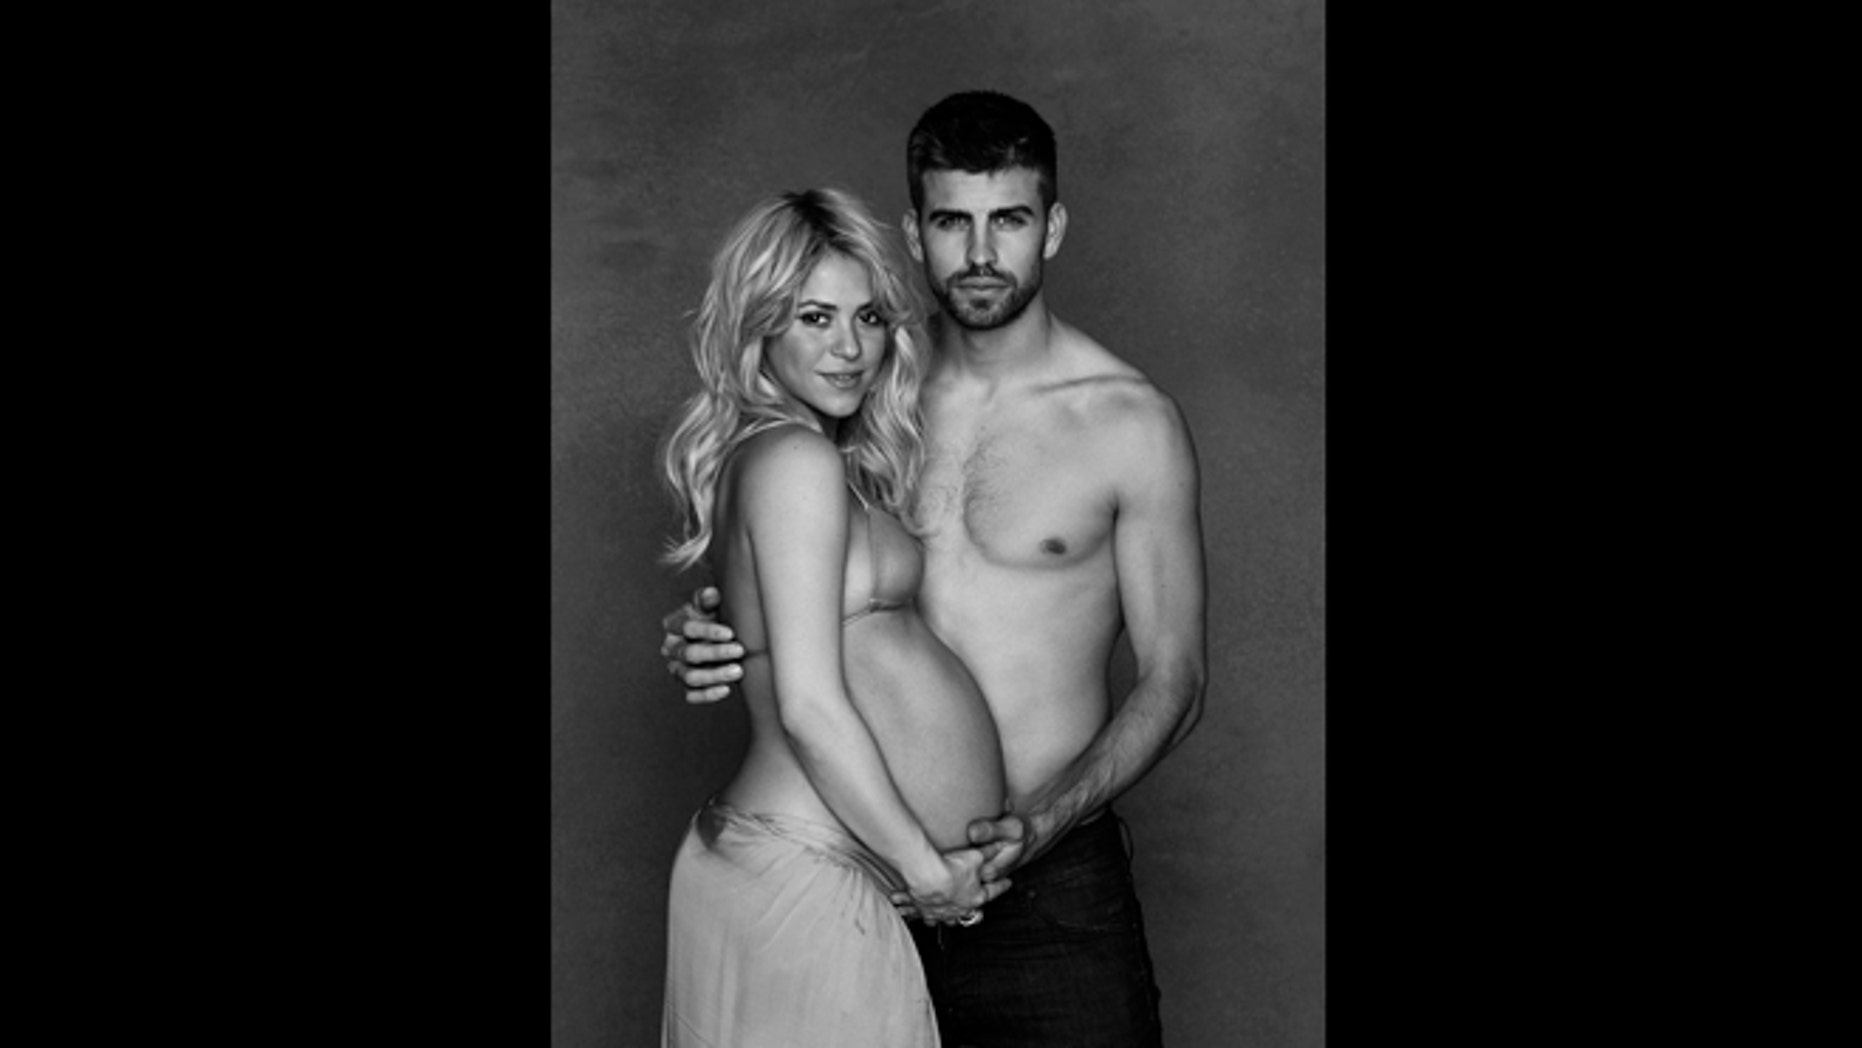 This December 2012 image released courtesy of singer and UNICEF Goodwill Ambassador Shakira shows her posing with FC Barcelona star Gerard Piqué.